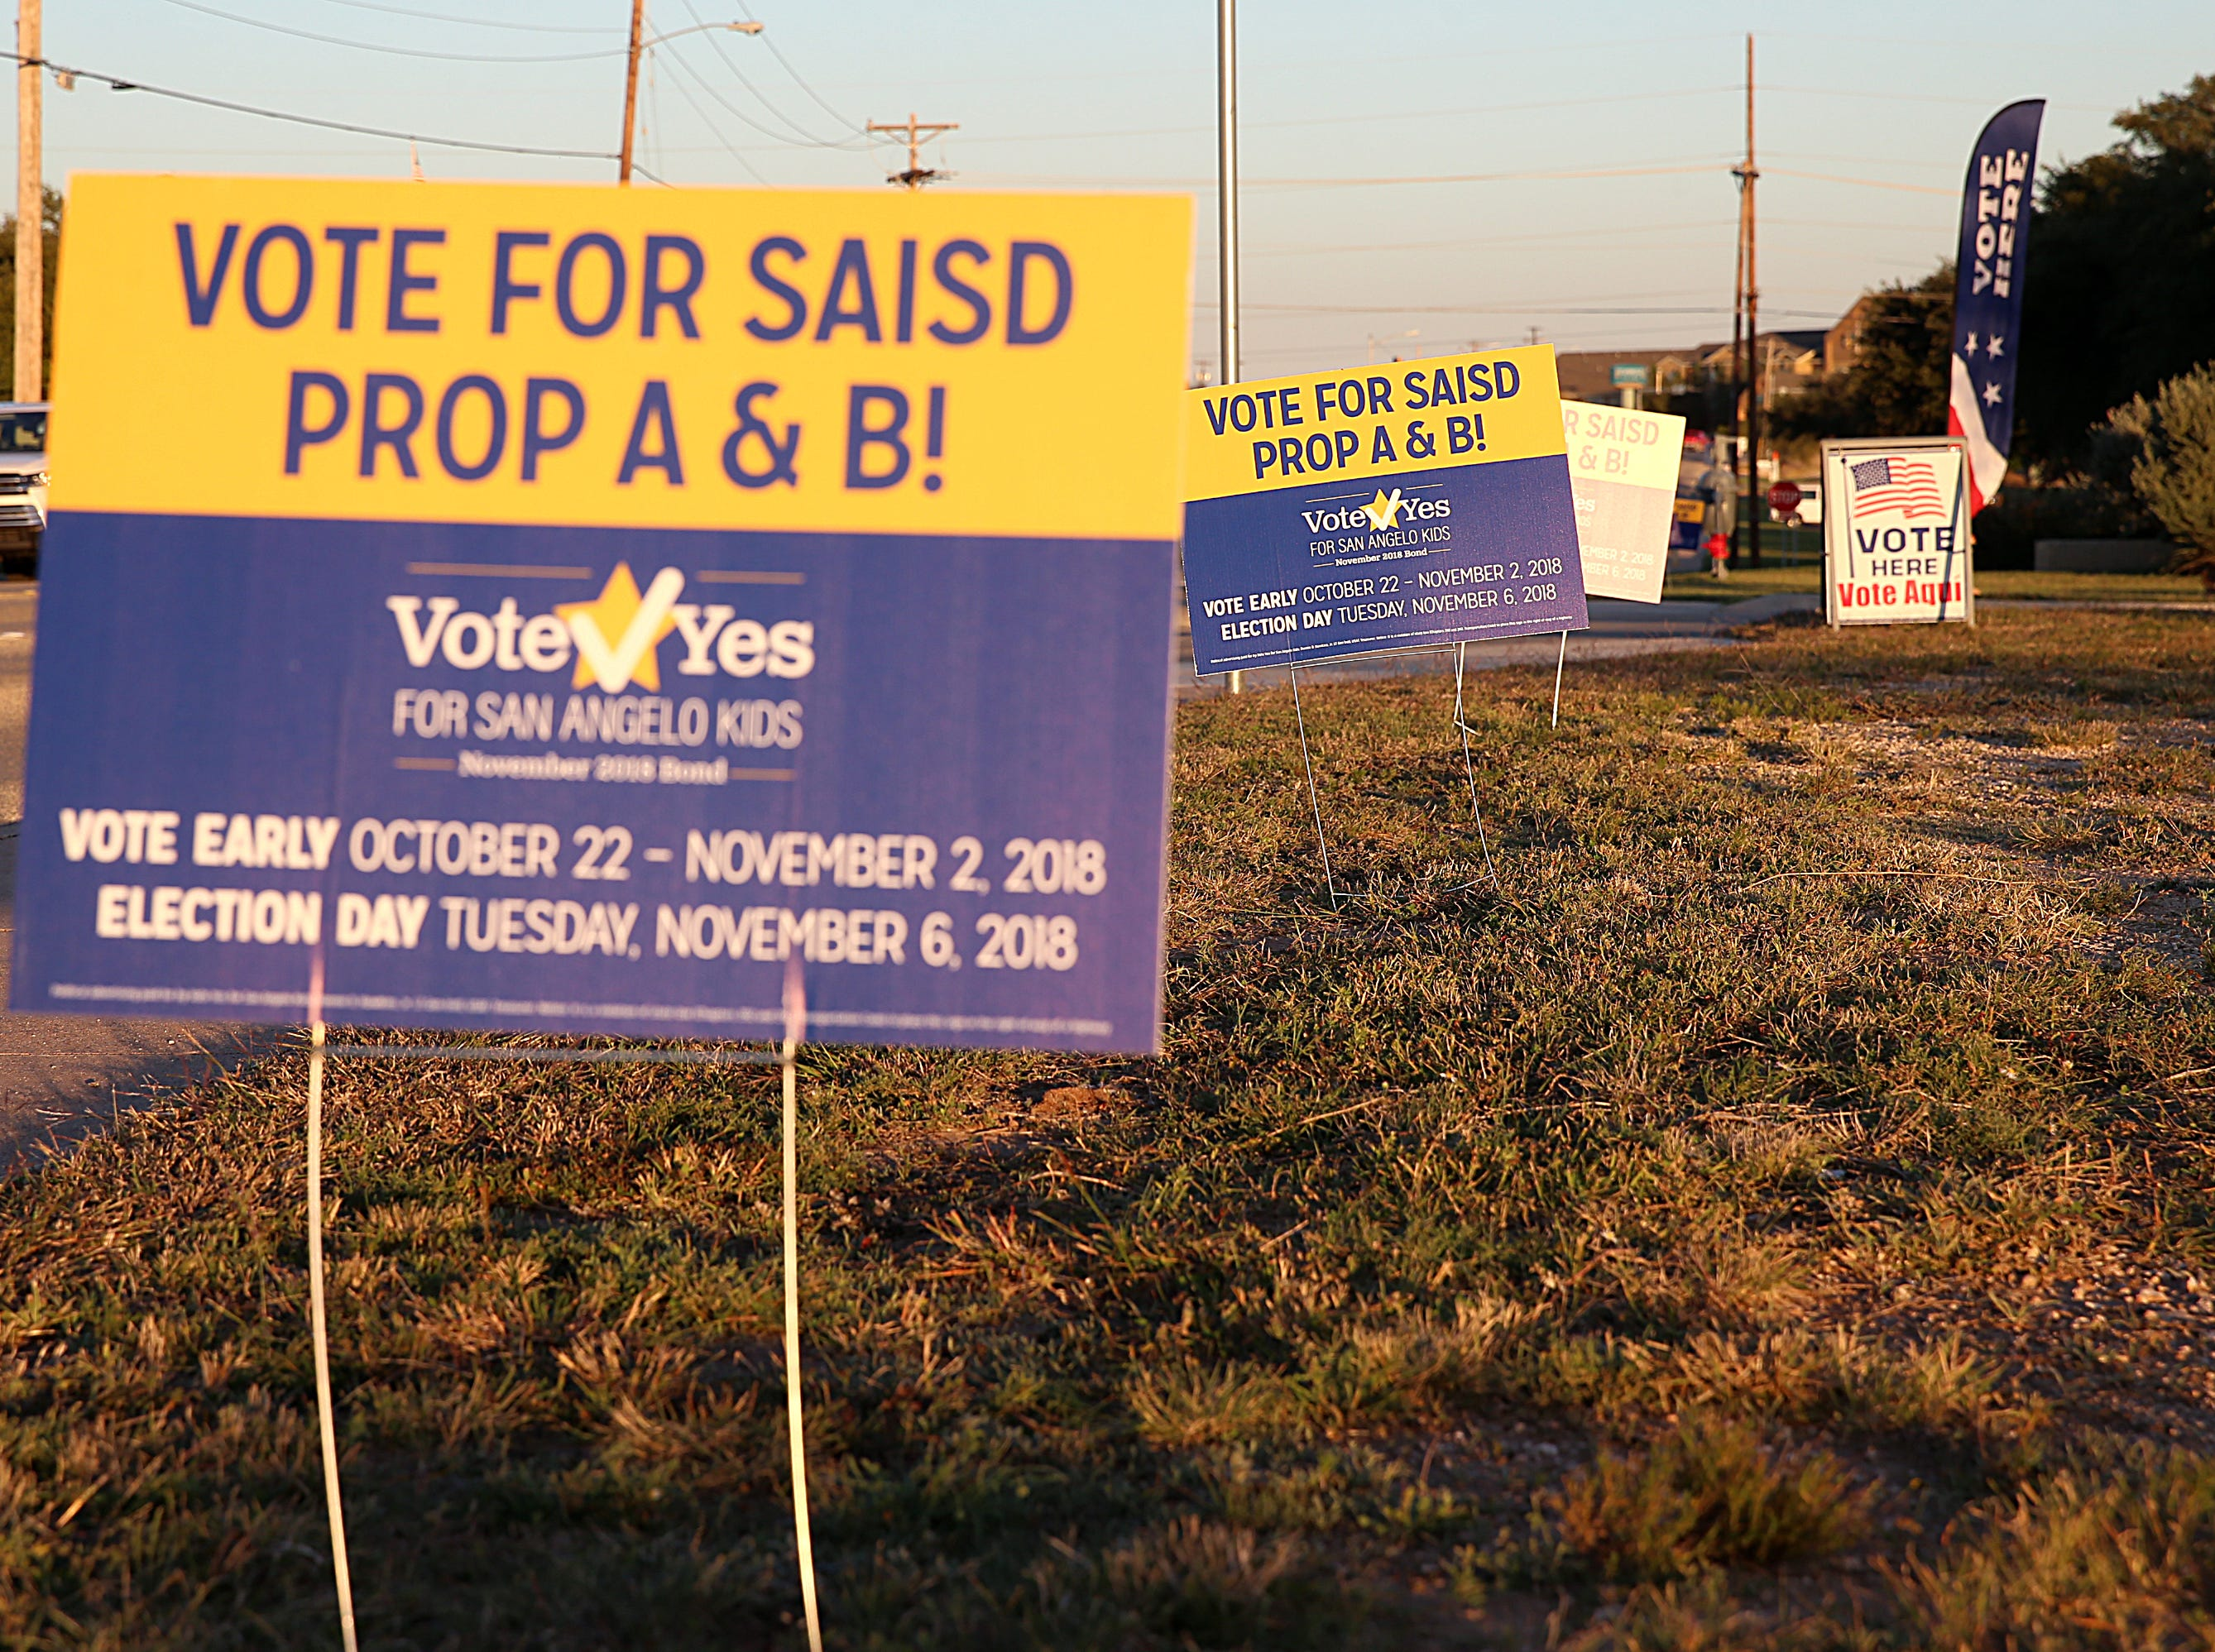 After failed bond, San Angelo ISD will discuss priorities and budget spending